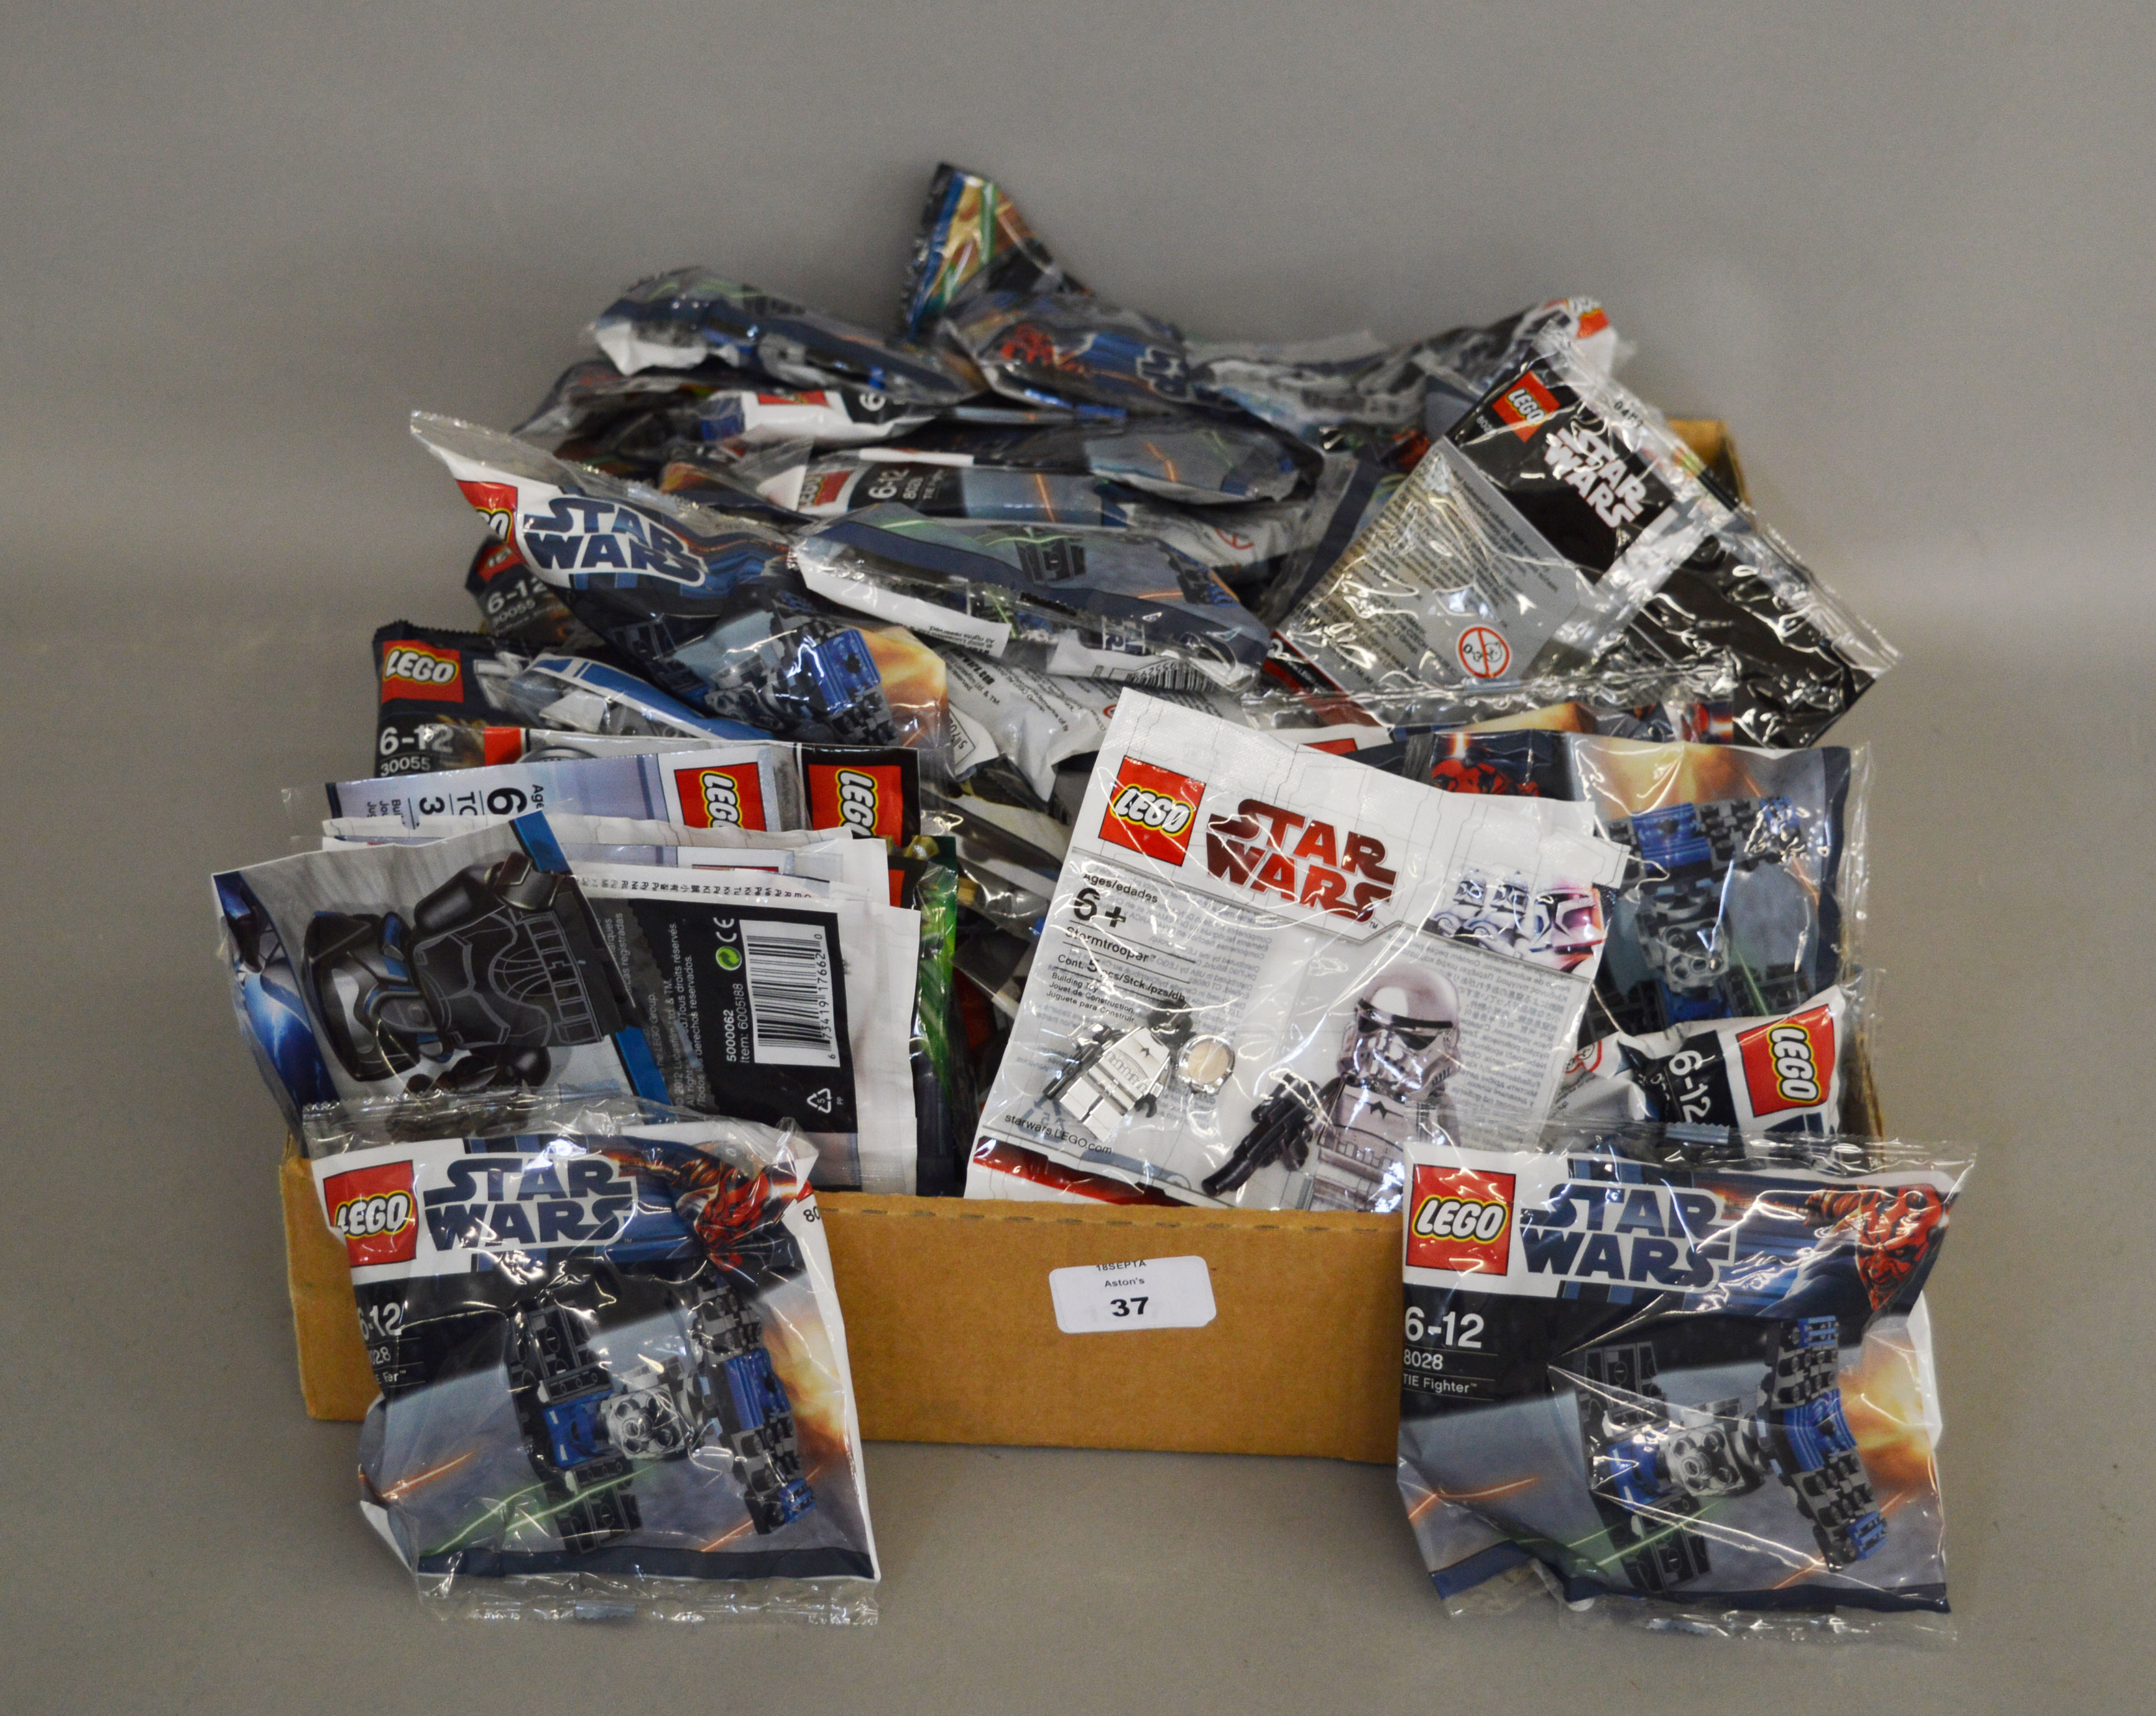 Lot 37 - 143 x Lego Star Wars mini sets, all sealed in bags.